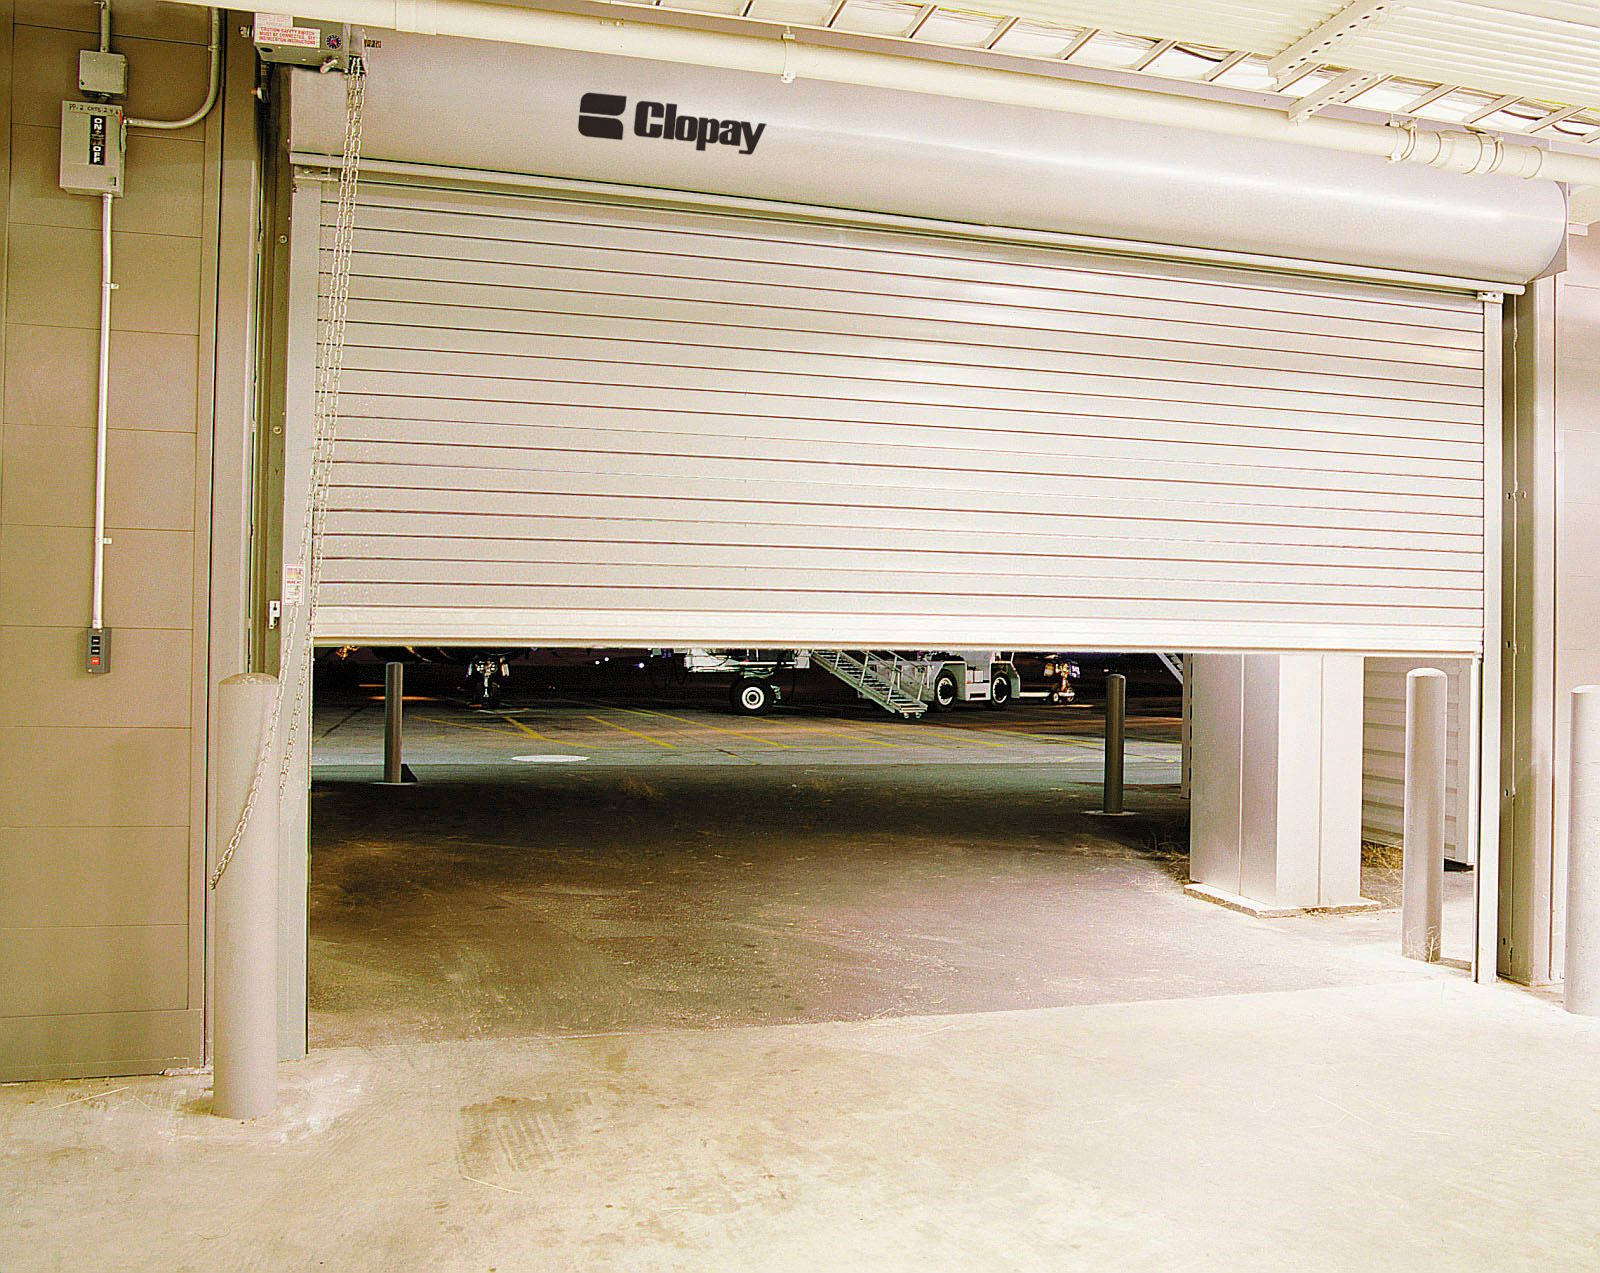 Top 11 Garage Issues And Solutions A Click Away Blog Garage Doors Roll Up Garage Door Garage Door Rollers